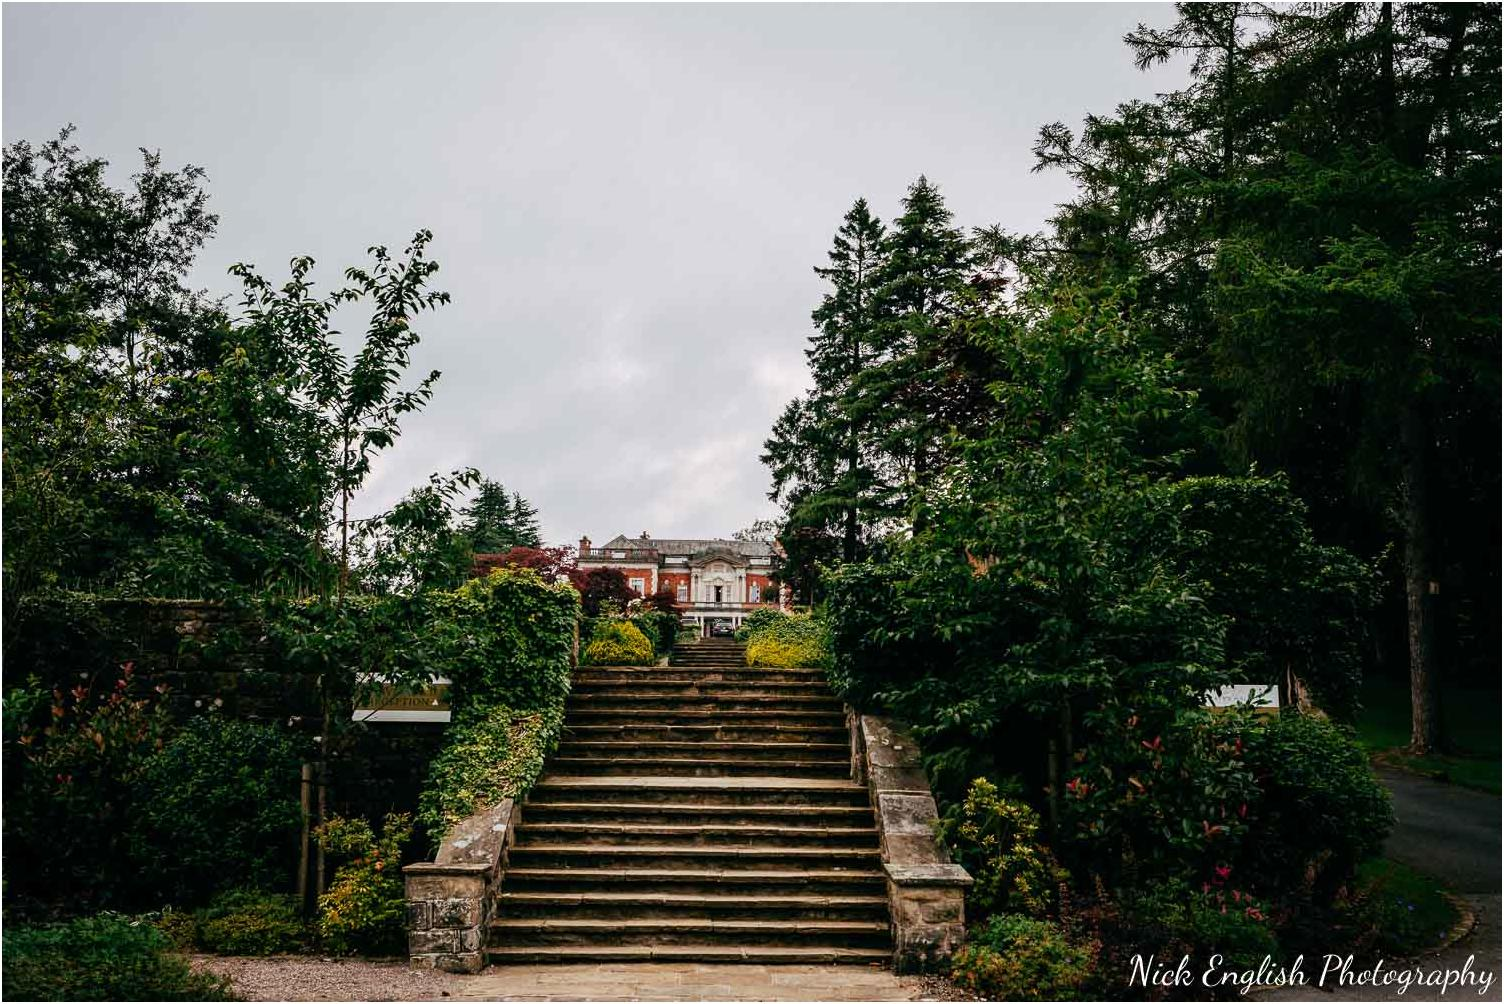 Eaves_Hall_Outdoor_Wedding_Photographs-2.jpg